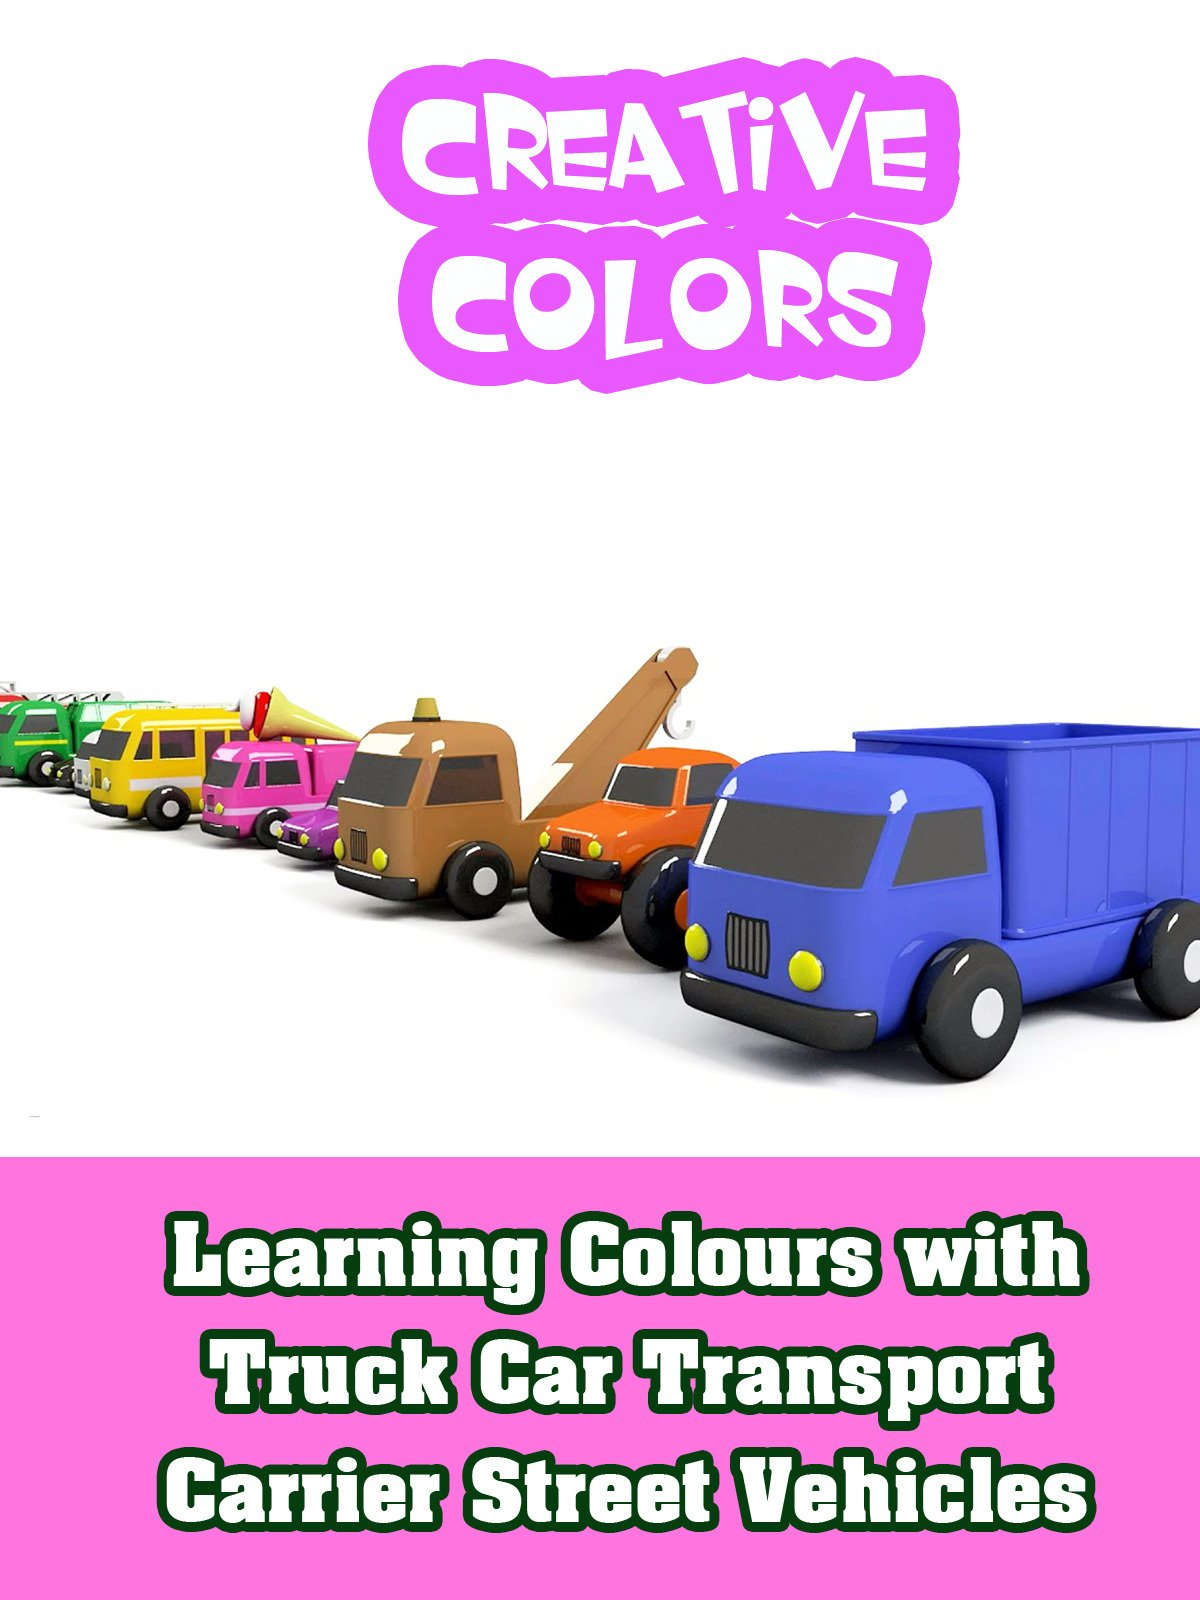 Learning Colours with Truck Car Transport Carrier Street Vehicles on Amazon Prime Video UK